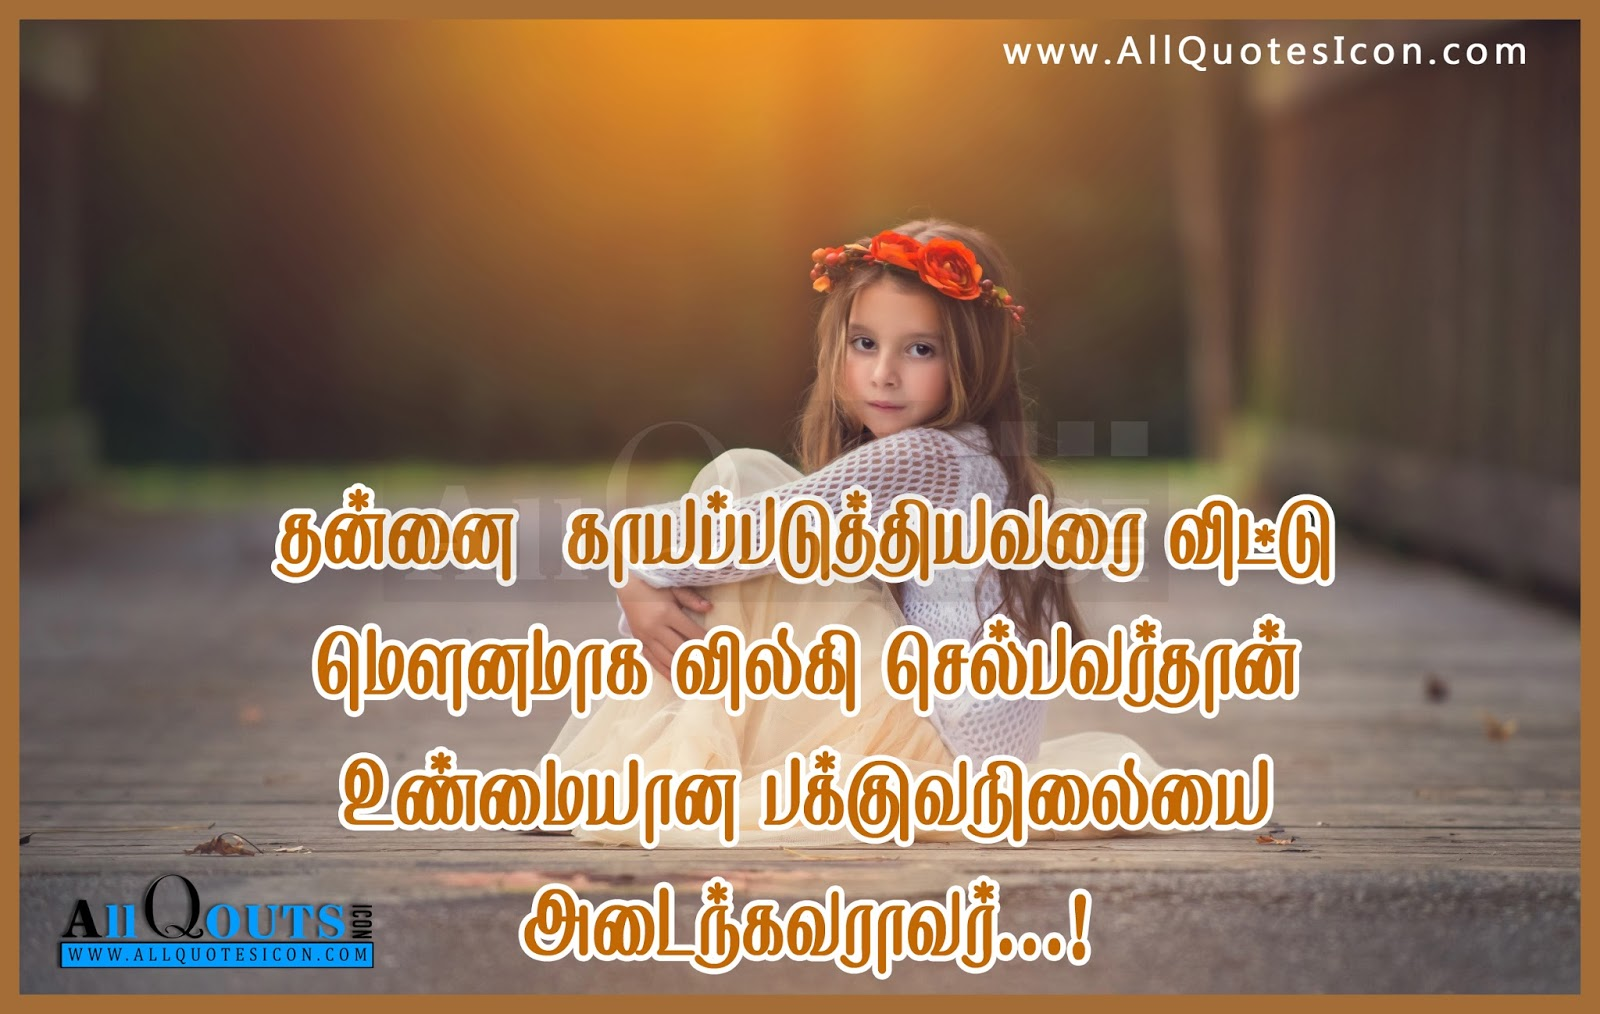 friendship quotes in tamil hd